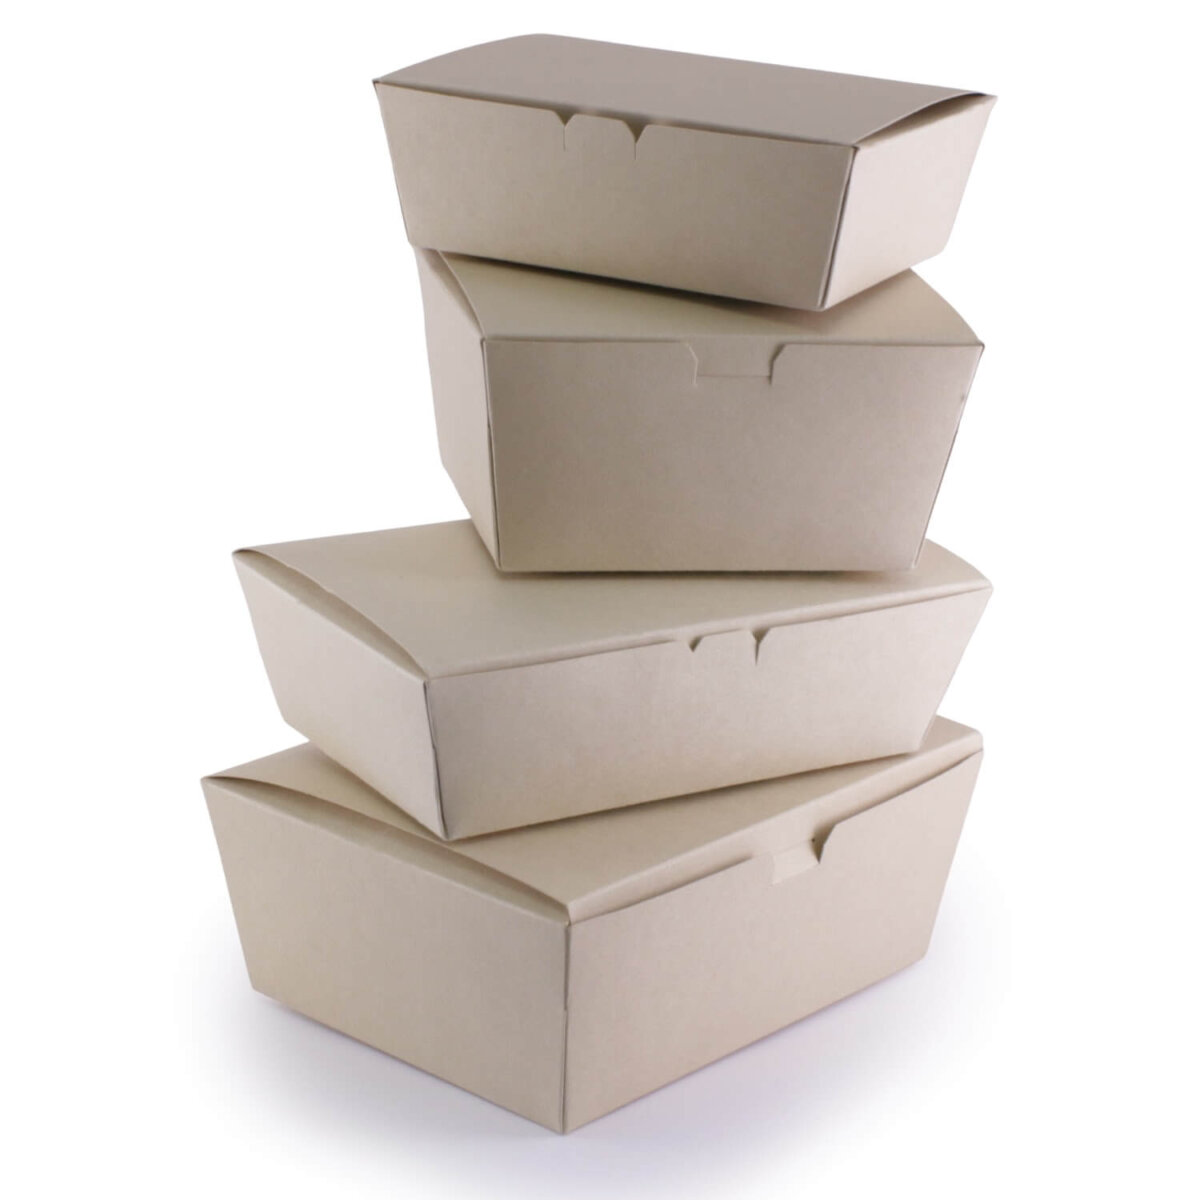 biodegradable Bamboo containers